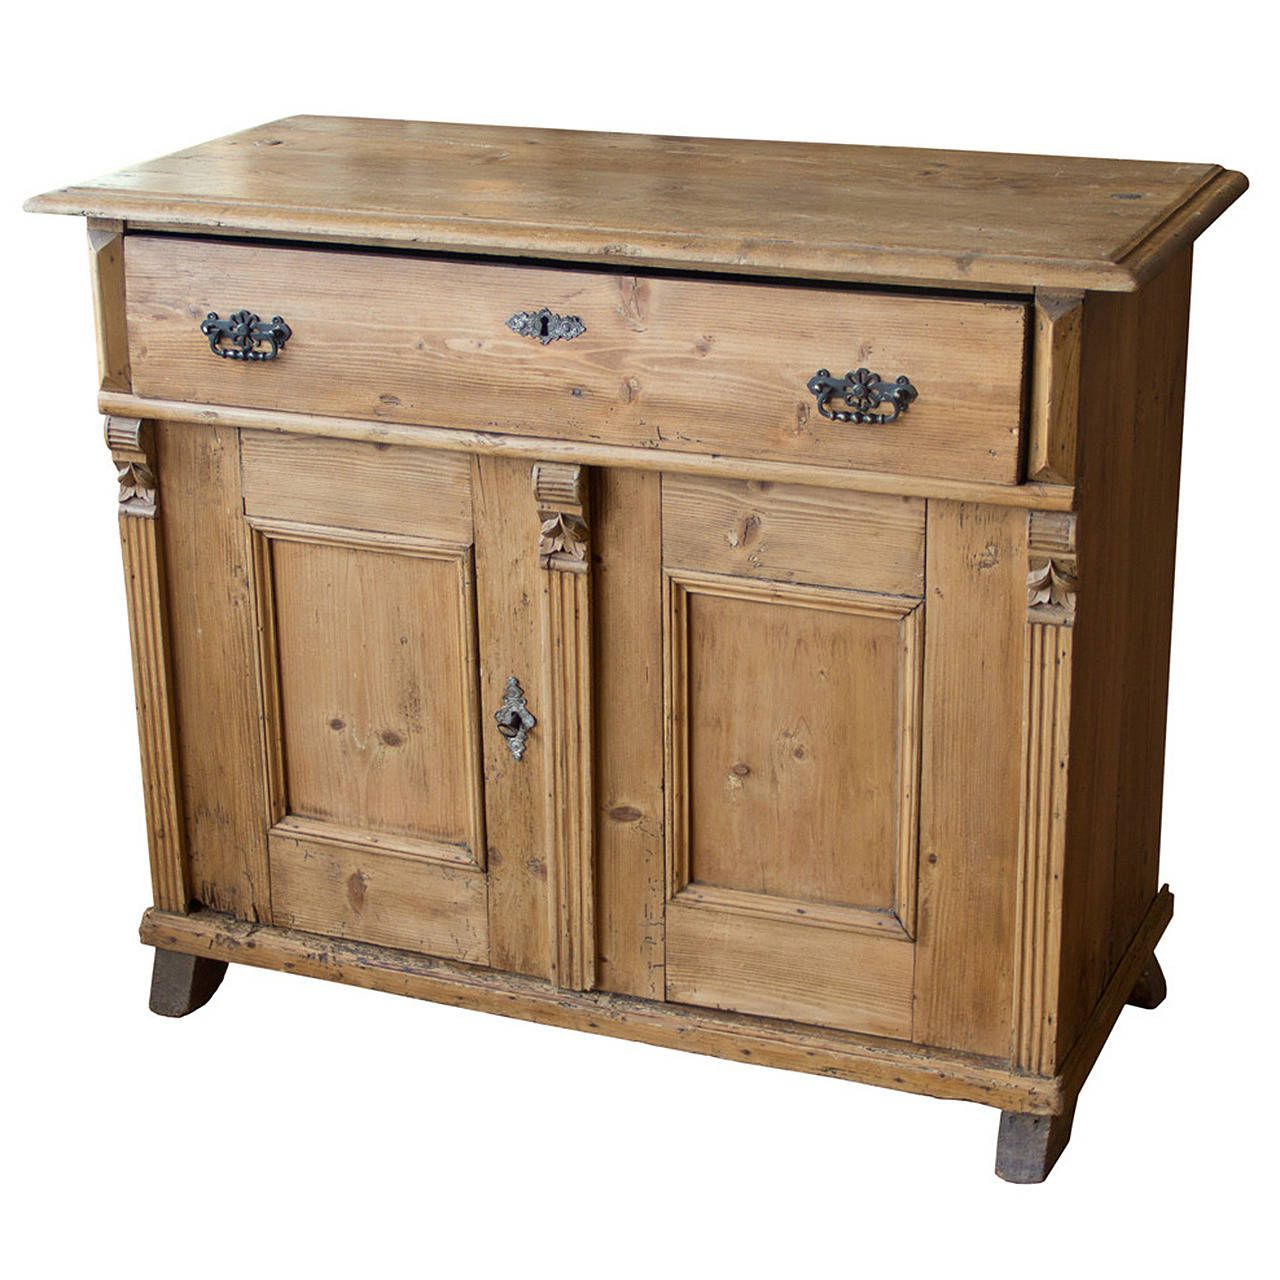 Widely Used Antique English Pine Cupboard In (View 7 of 20)